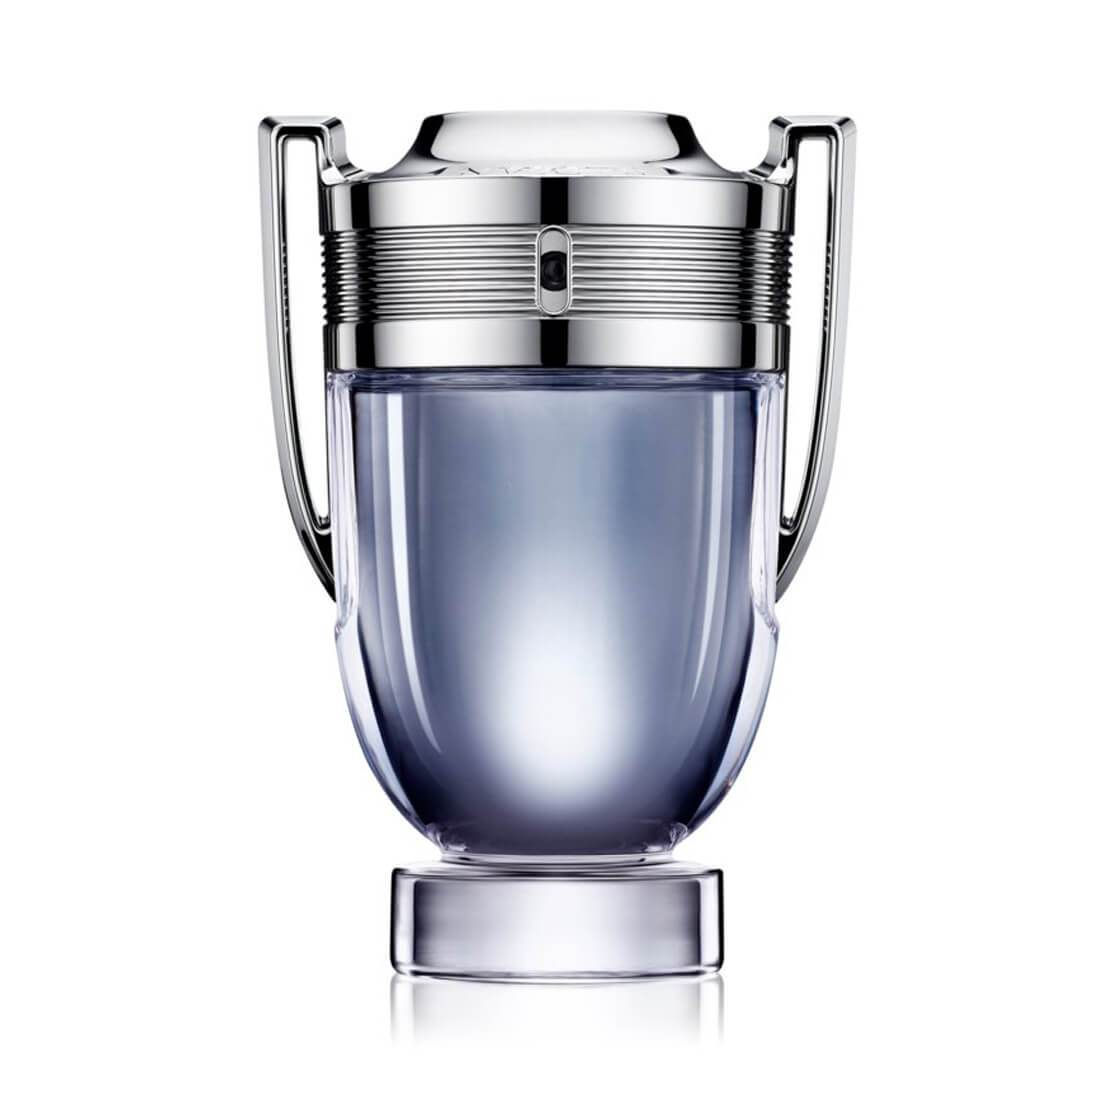 Paco Rabanne Invictus Eau de Toilette Perfume For Men